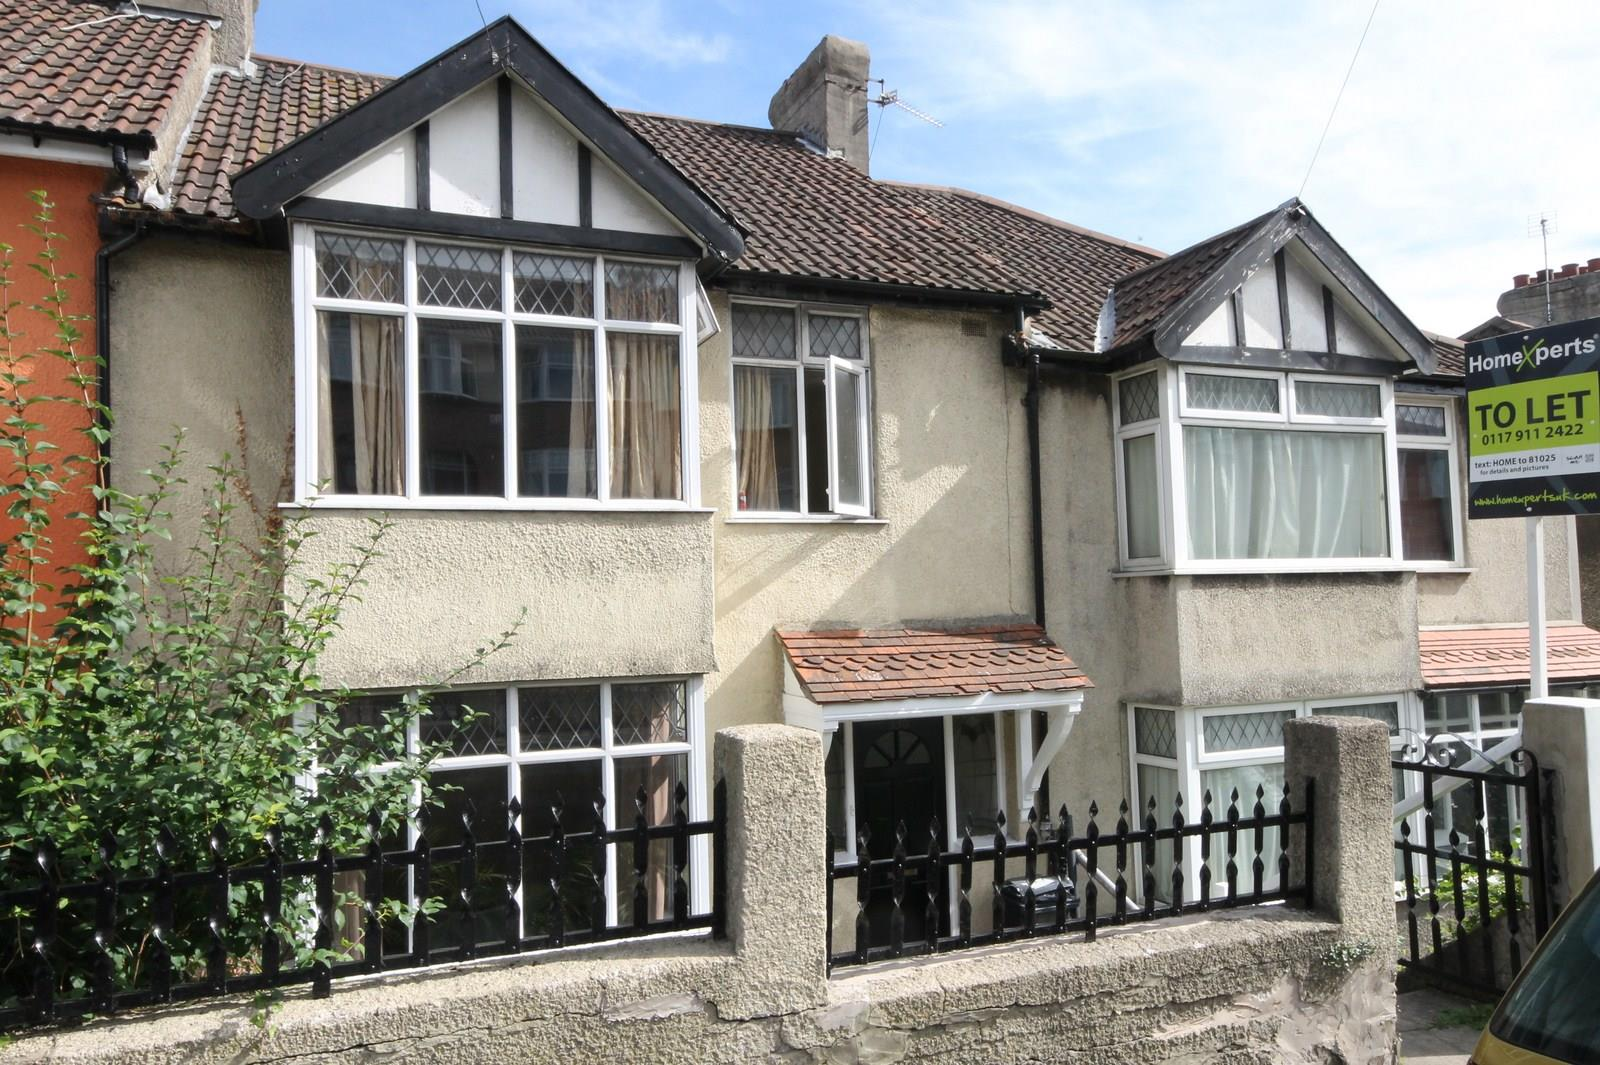 3 bed house to rent in Ashley Down Road, Bristol - Property Image 1